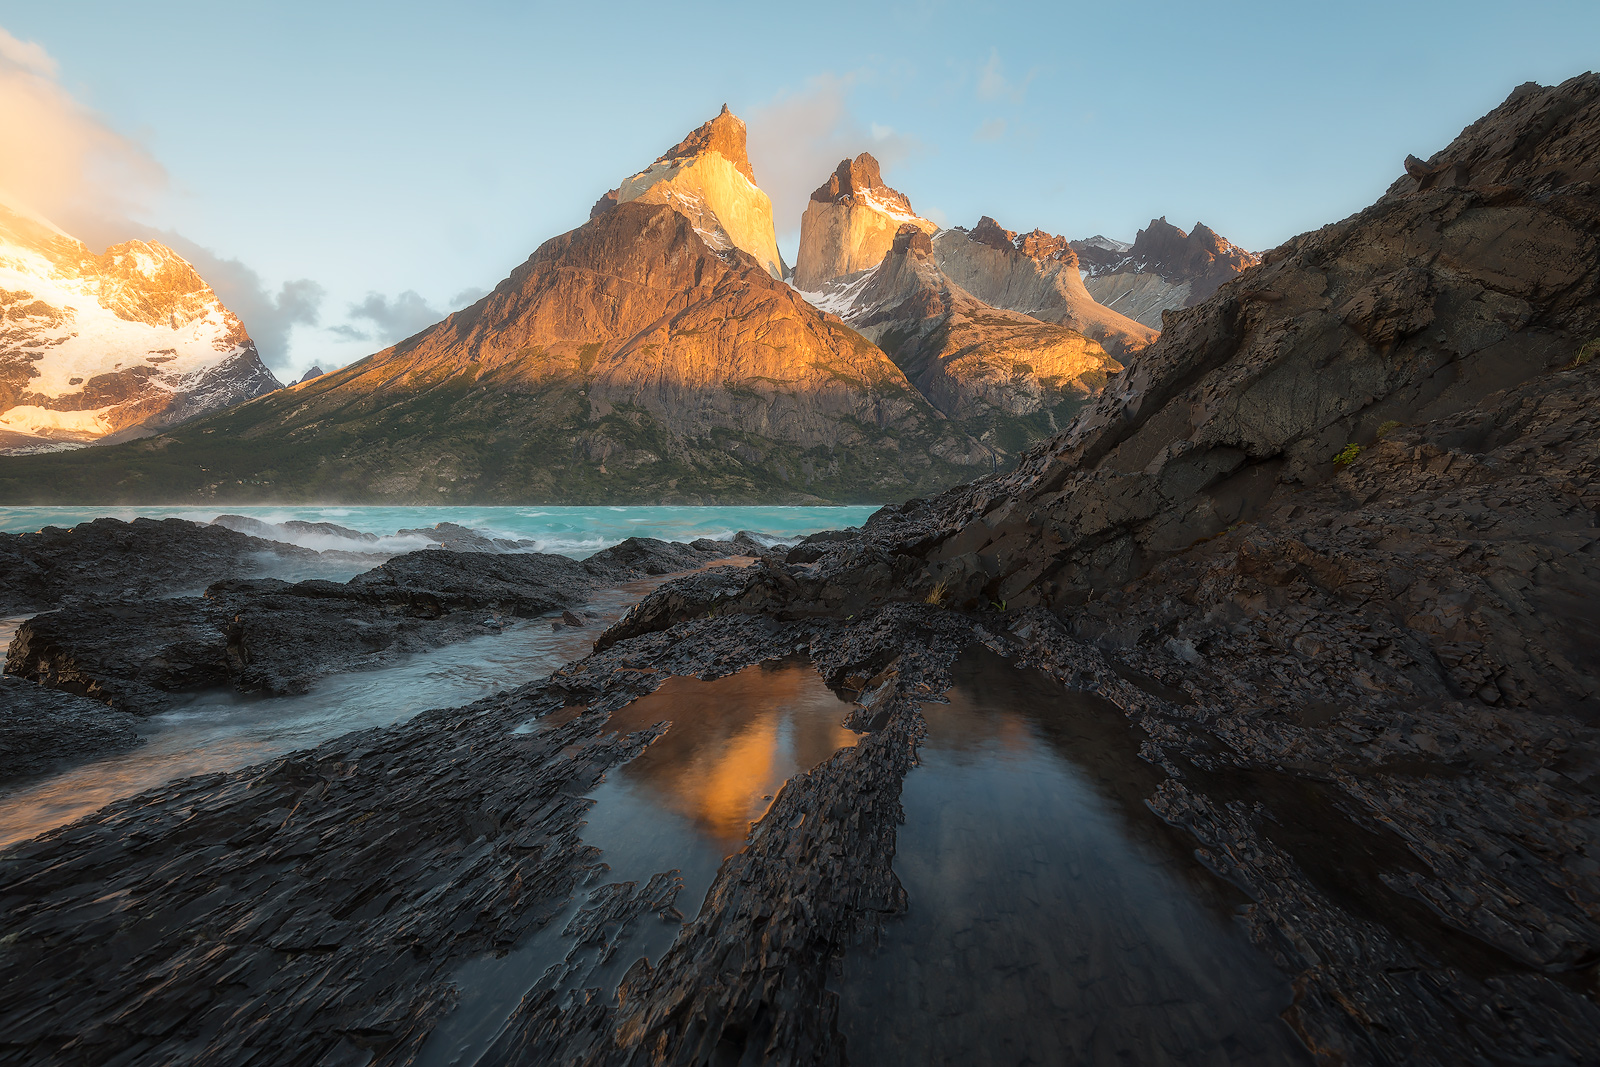 Spring,andes mountains, beautiful, cerro paine grande, chile, lago nordenskiöld, lake, landscape, los cuernos, morning, mountain, mountain range, patagonia, peak, snow, south america, sunrise, torres , photo